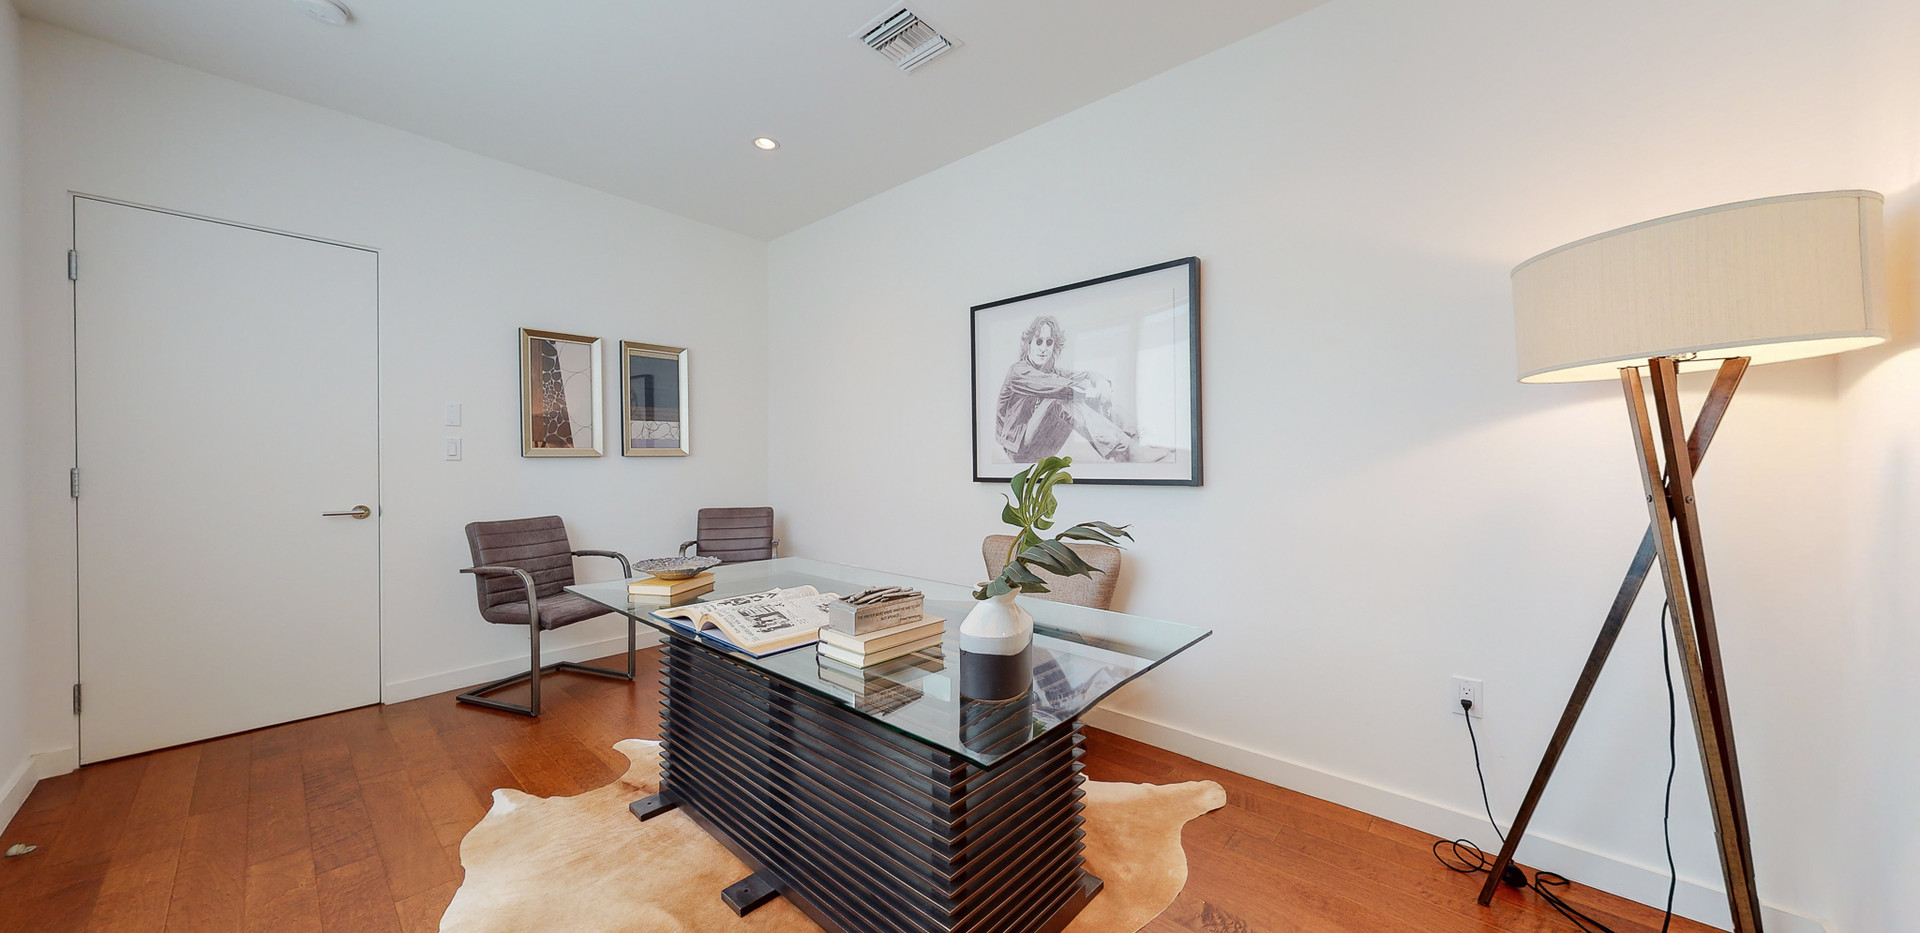 146 S Hayworth Ave-18.JPG